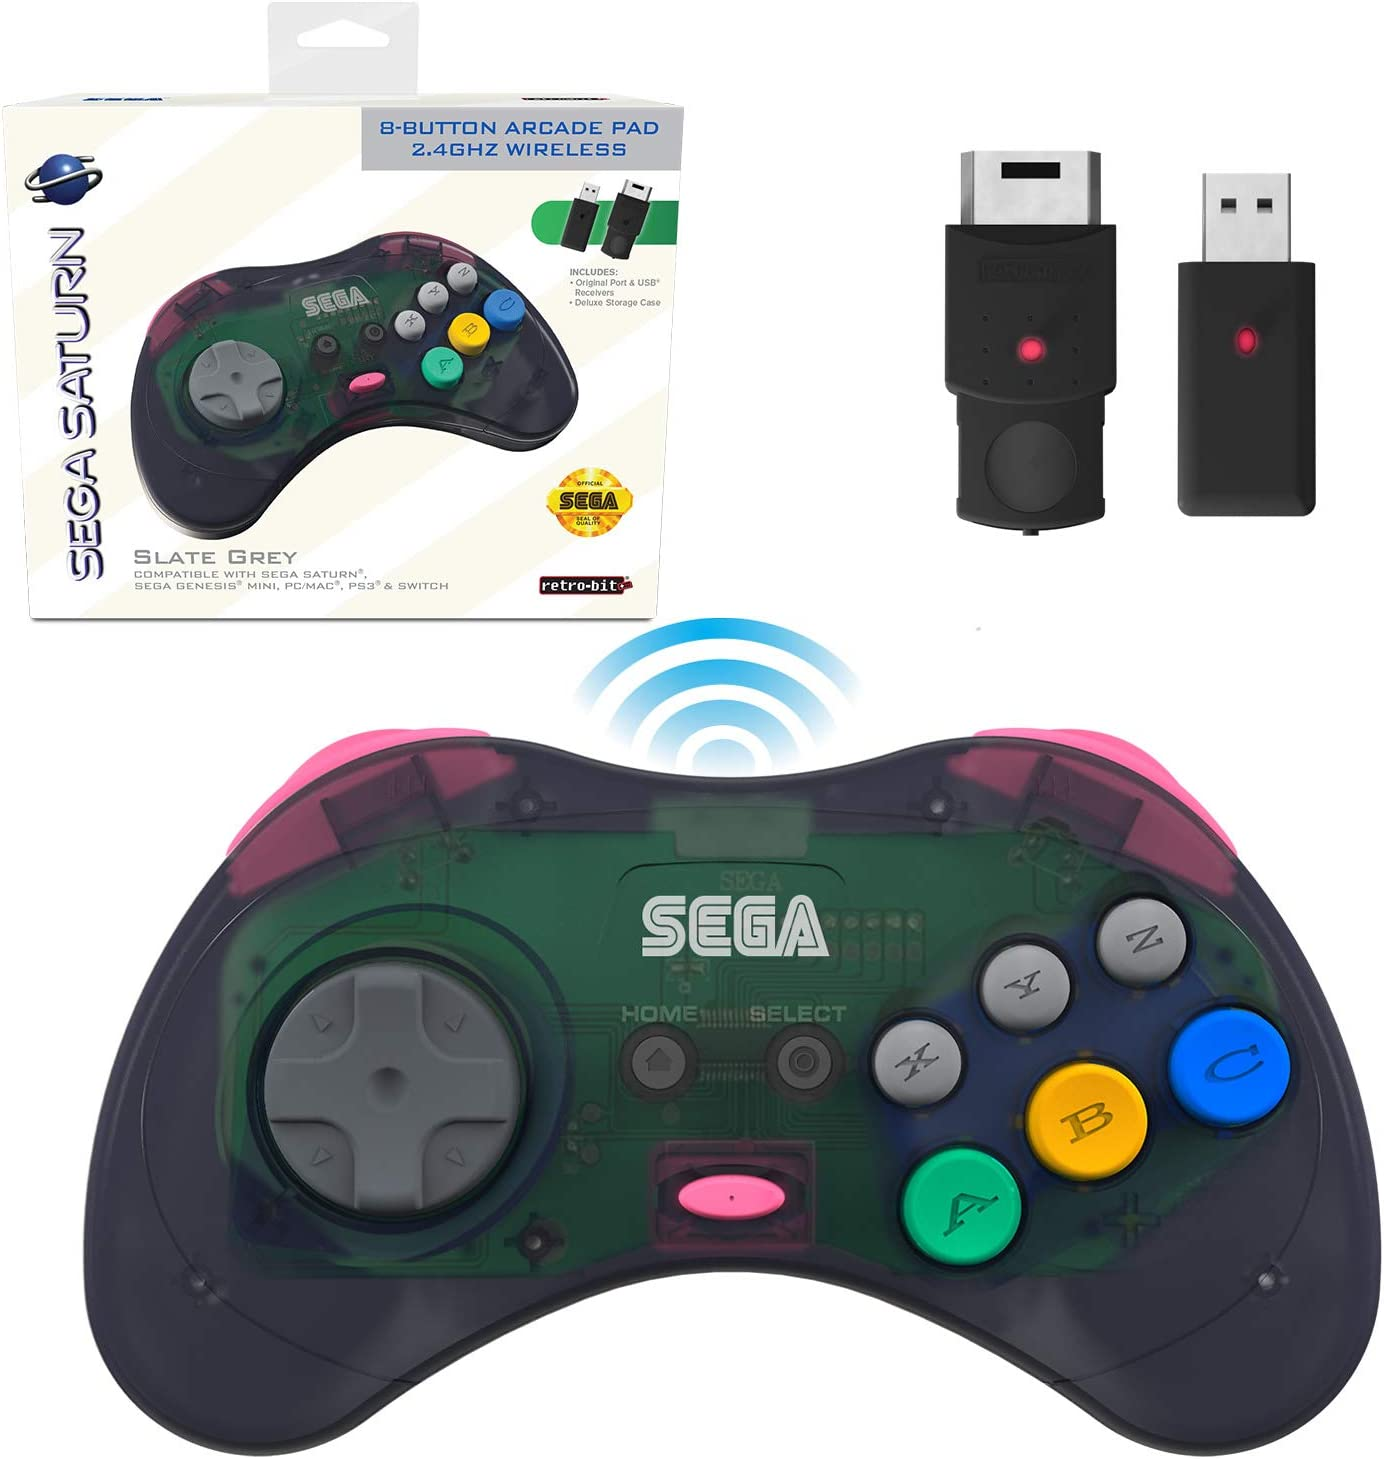 Retro-Bit Official Sega Saturn 2.4 GHz Wireless Controller 8-Button Arcade Pad for Sega Saturn, Sega Genesis Mini, Nintendo Switch, PS3, PC, Mac - Includes 2 Receivers & Storage Case - Slate Grey